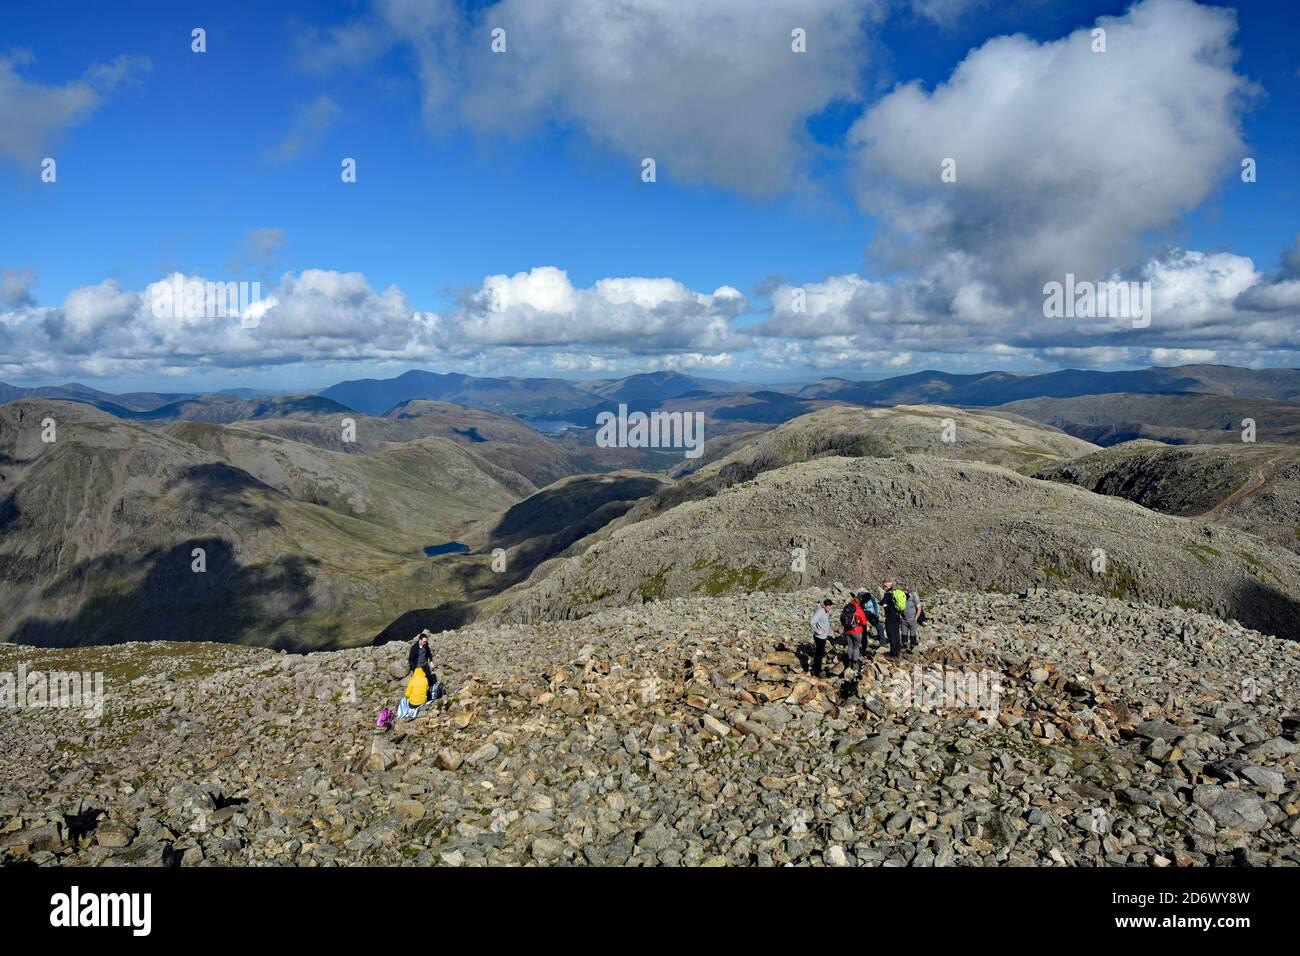 The summit plateau of Scafell Pike in Lake District National Park. Hikers take a break on the peak and take in the view stretching to Derwent Water. Stock Photo